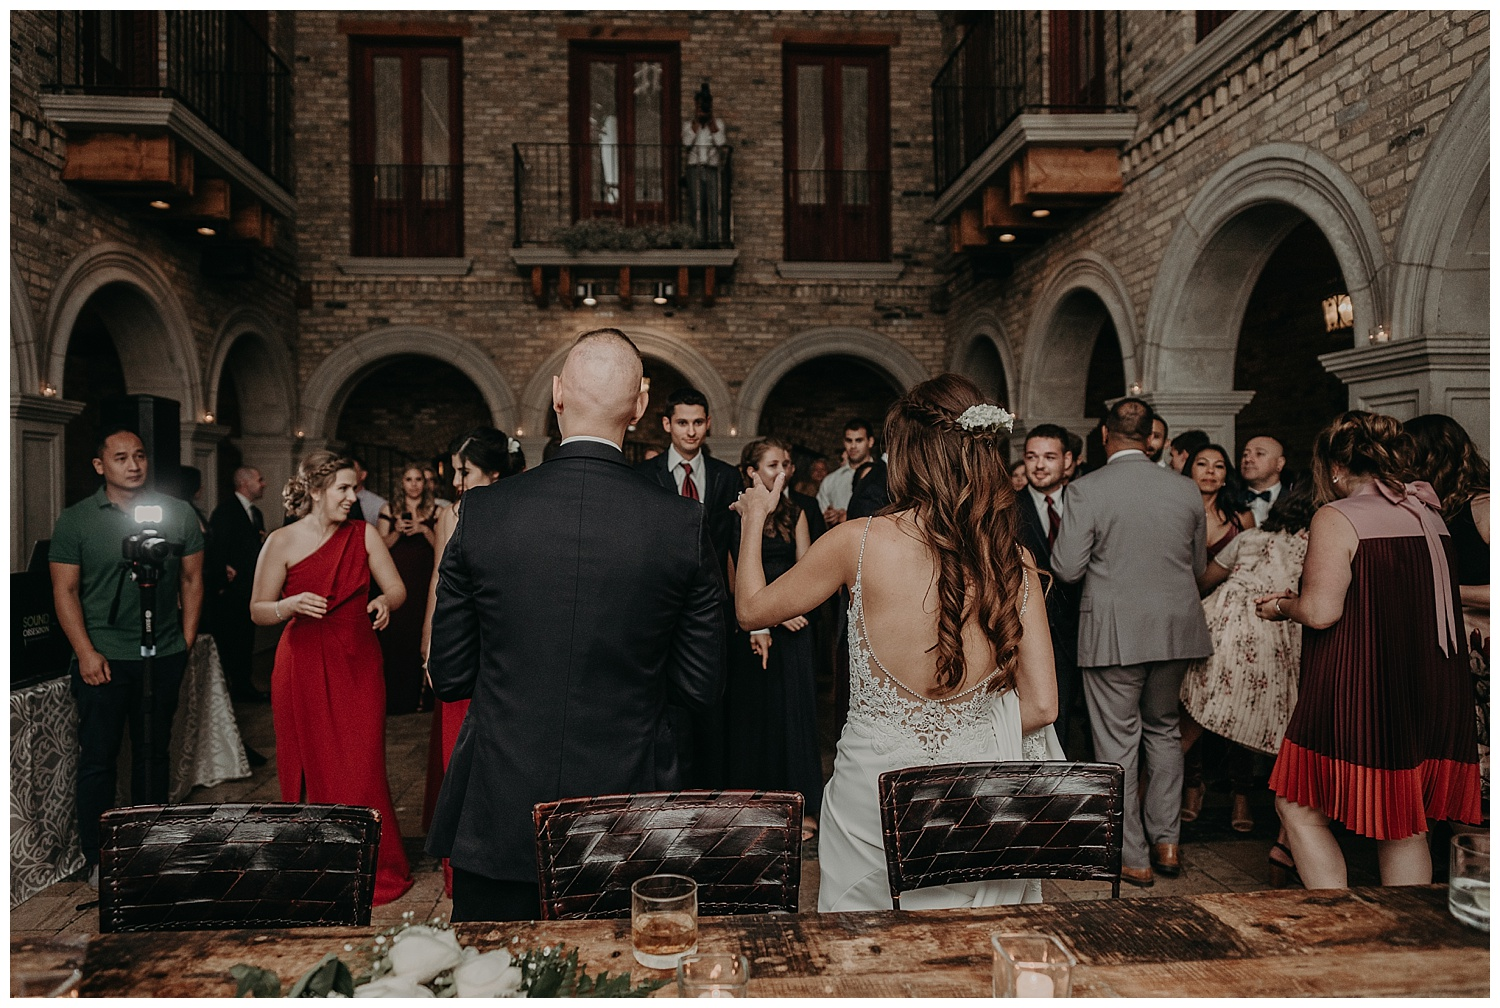 Katie Marie Photography | Hamilton Ontario Wedding Photographer | Kitchener Wedding Photographer | Hacienda Sarria Wedding | Cambridge Wedding_0253.jpg